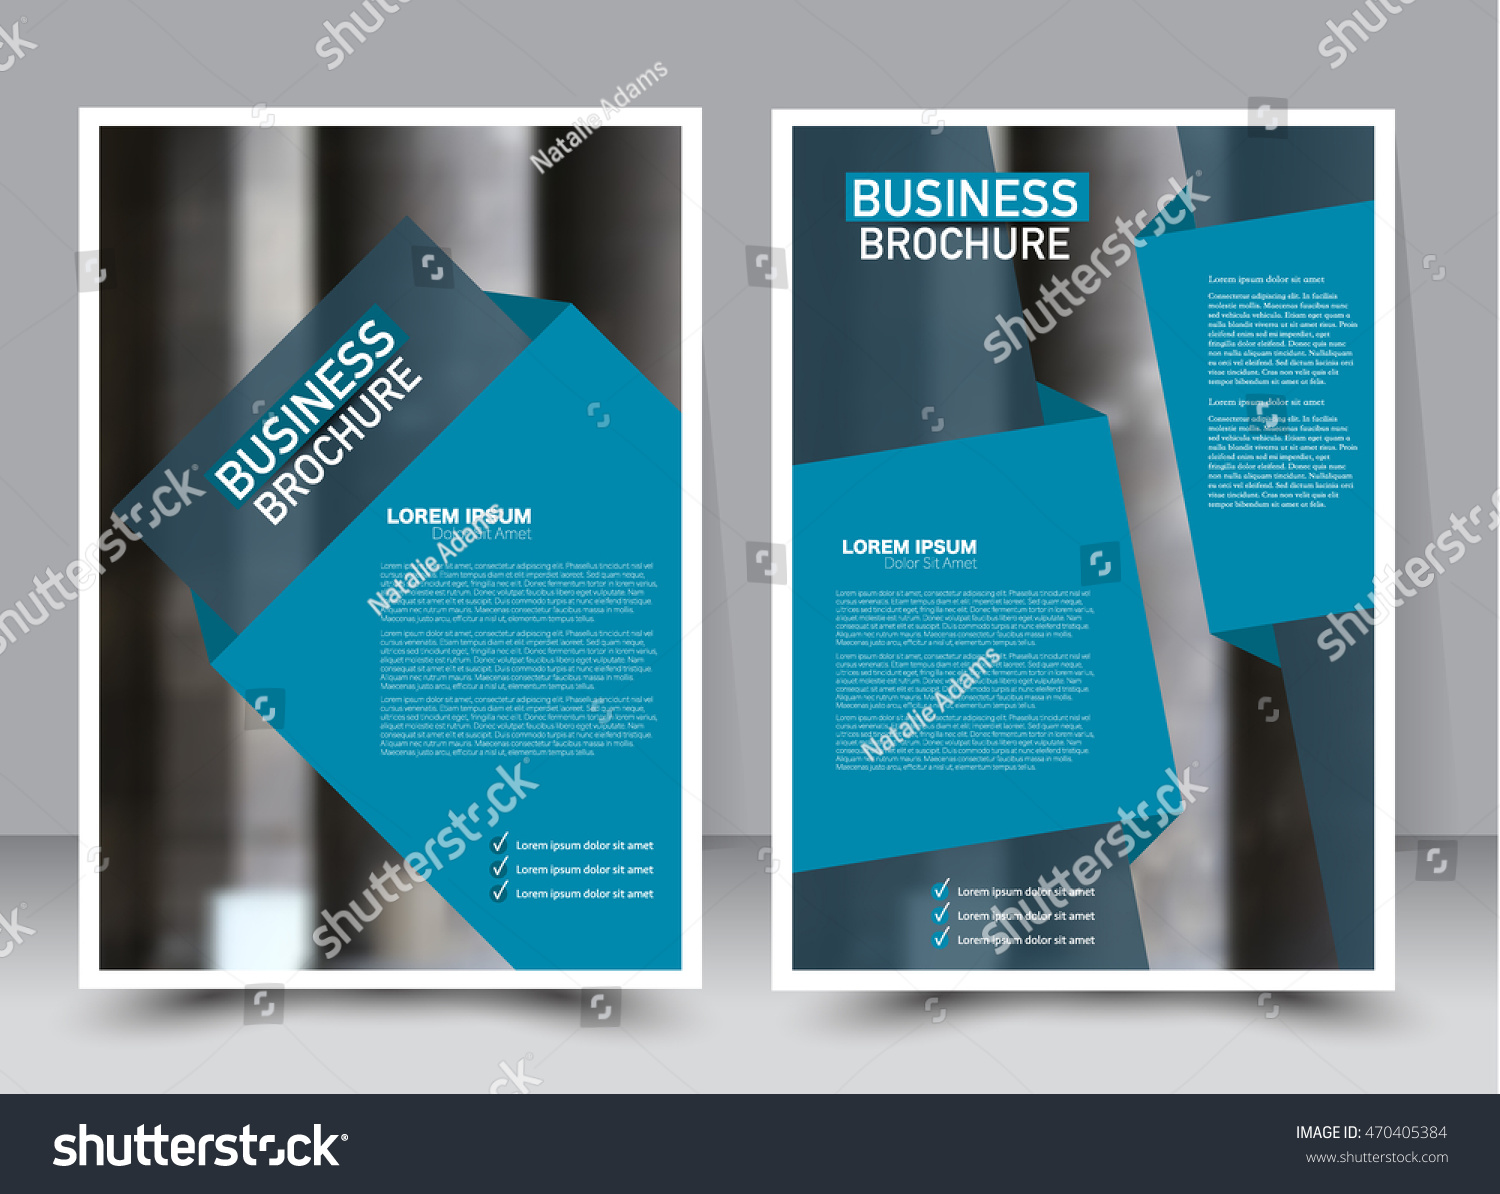 abstract flyer design background brochure template annual report abstract flyer design background brochure template annual report cover for magazine front page